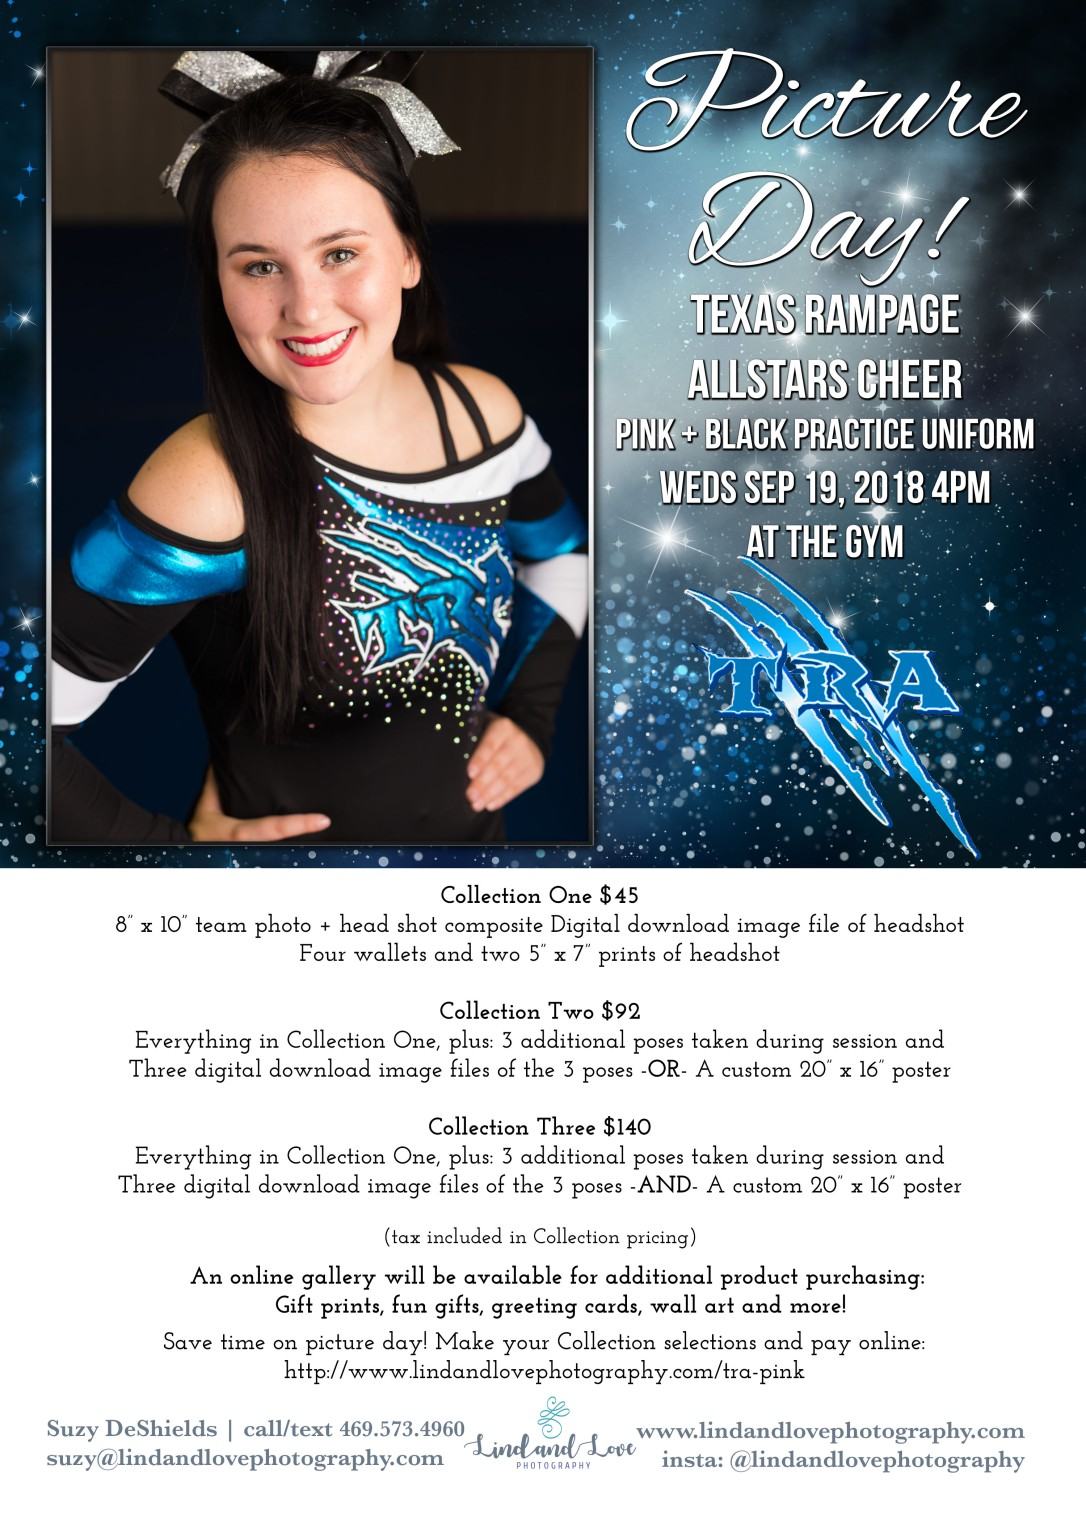 Texas_Rampage_Cheer_Picture_Day_Info